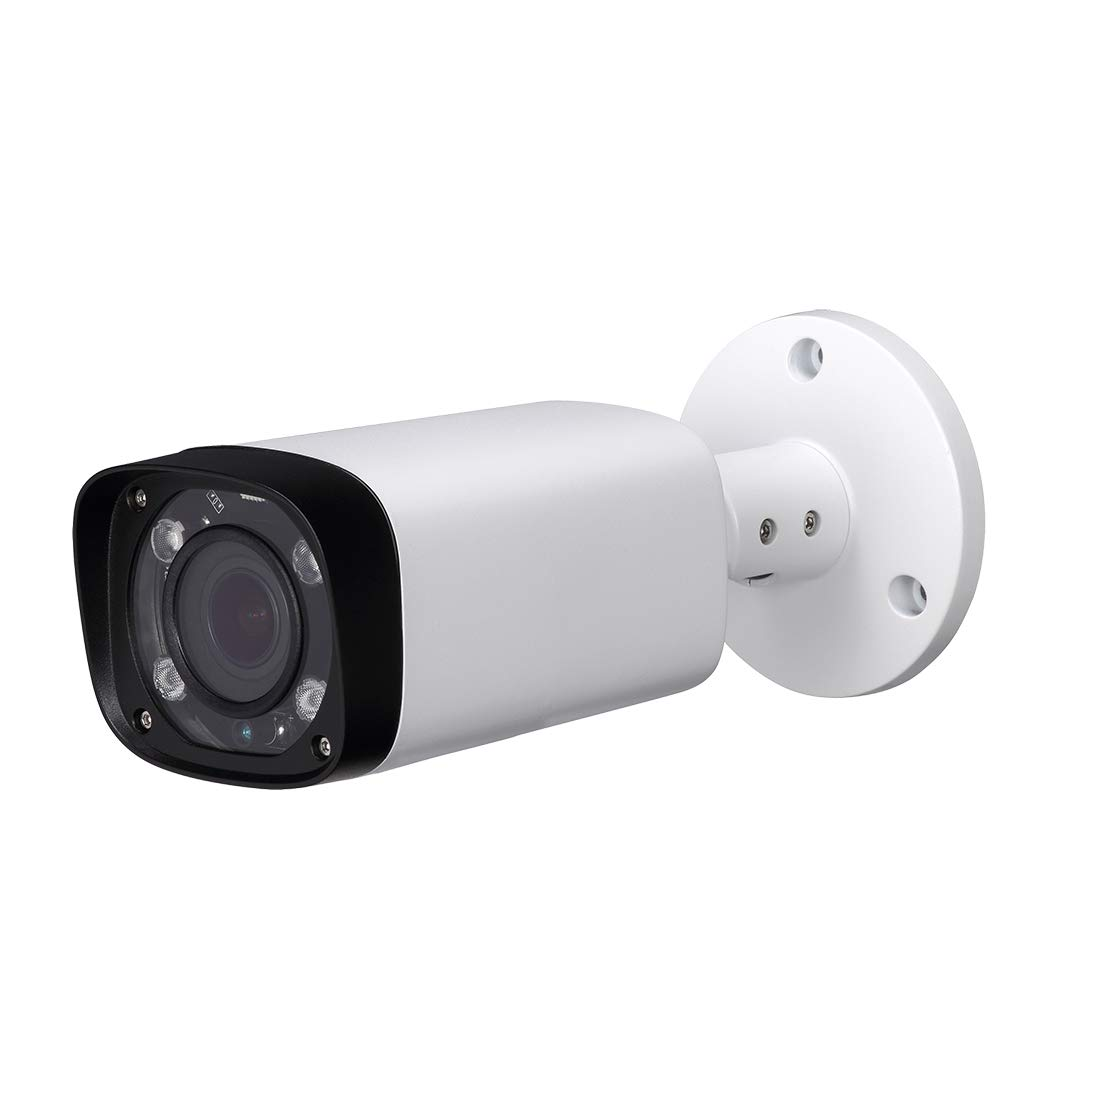 4MP Security IP PoE Camera,H.265 IPC-HFW4431R-Z 2.7mm – 12mm Motorized Varifocal Lens,80meters IR Night Vision Length,Network Surveillance CCTV,IP67 Waterproof